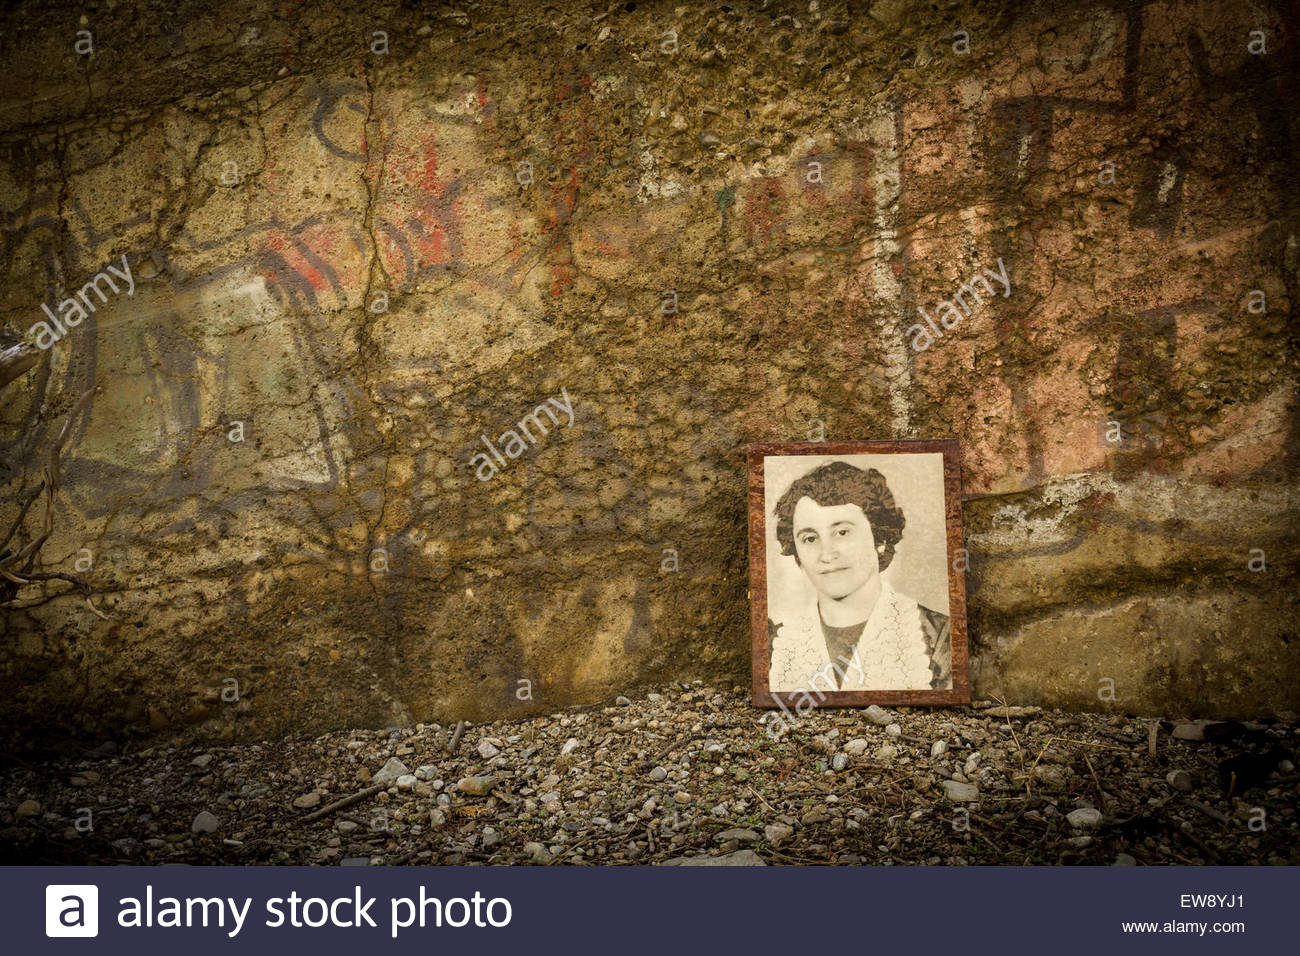 Remembrance of things past. In search of lost time - Stock Image